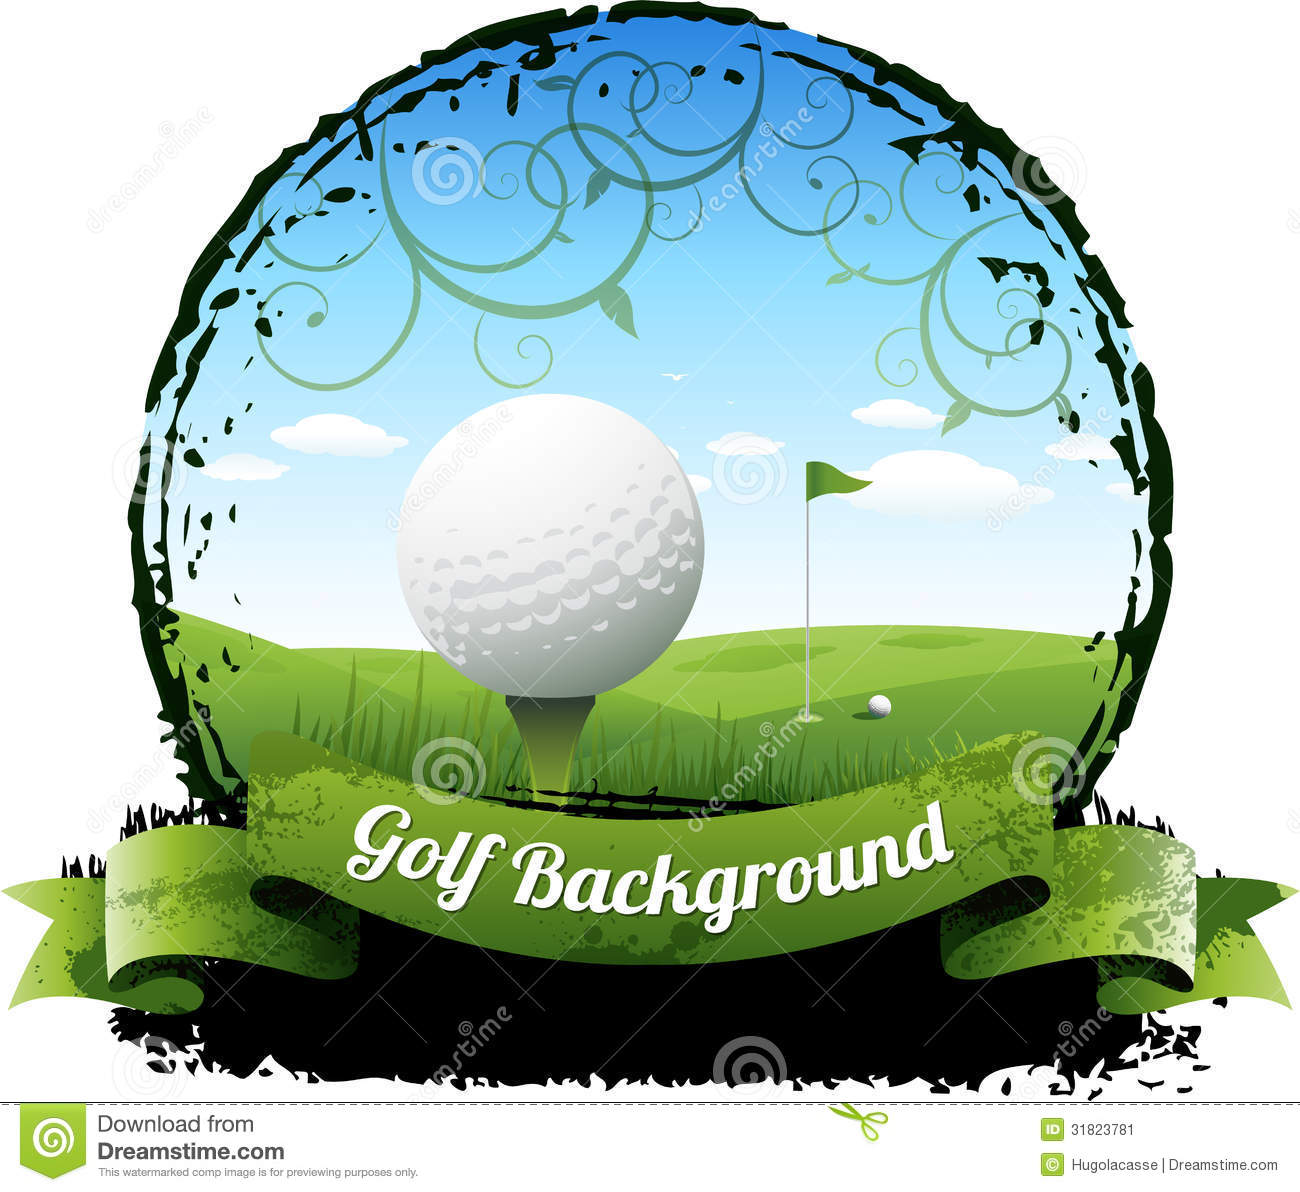 Golf Tournament Clipart Golf Background Stock Image